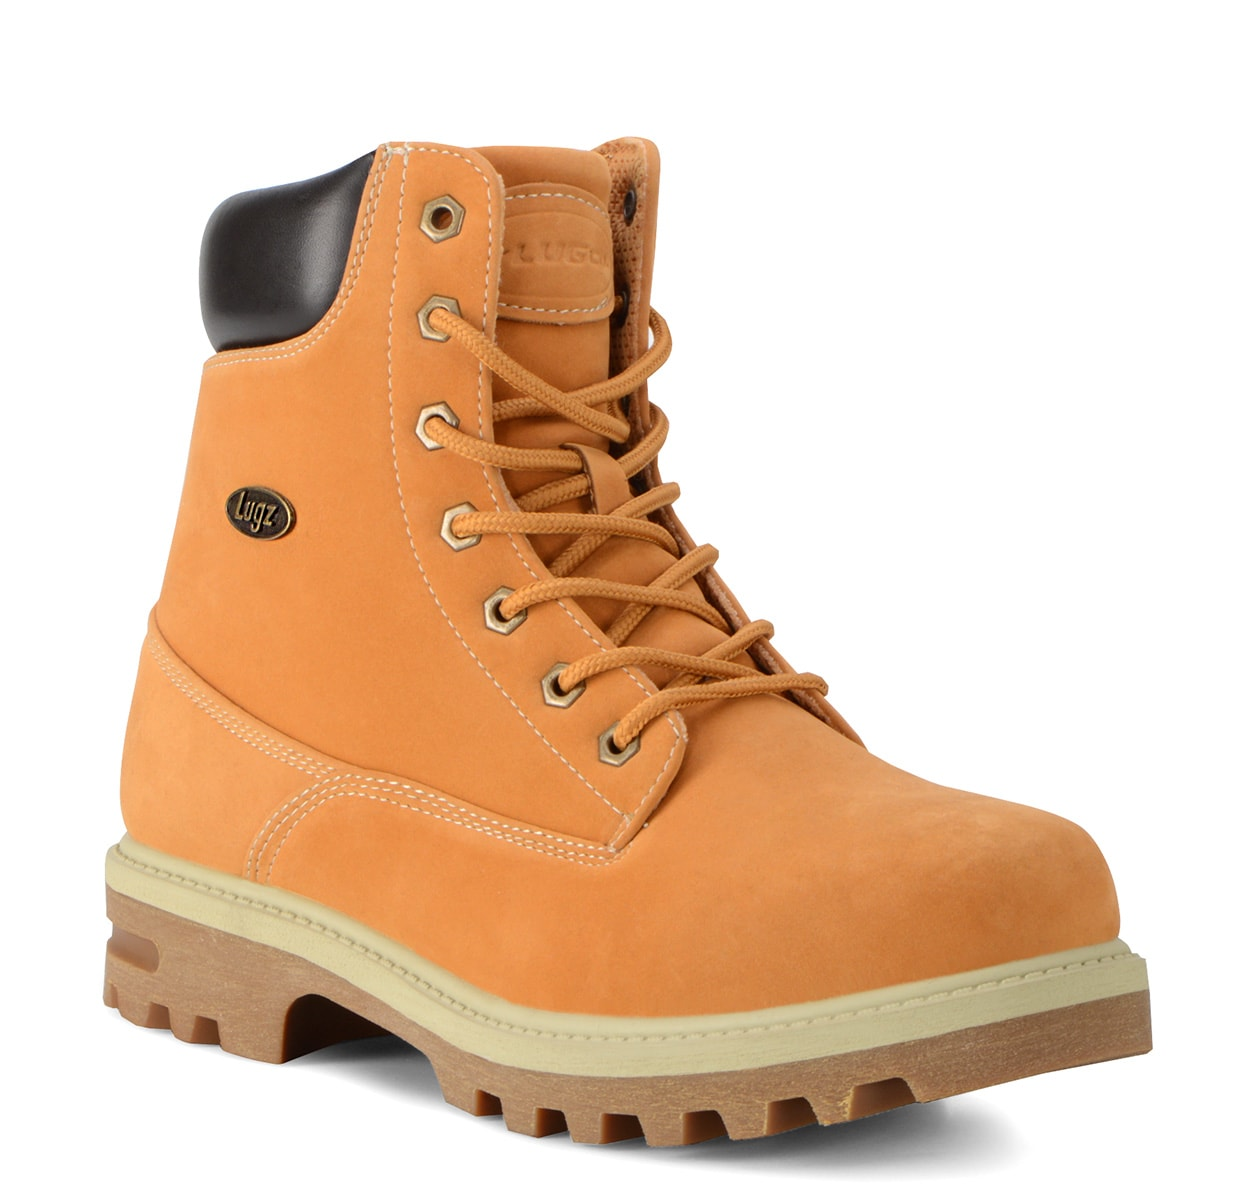 check out e1a0f c6fce Men s Empire Hi Water Resistant 6-Inch Boot - Lugz Footwear